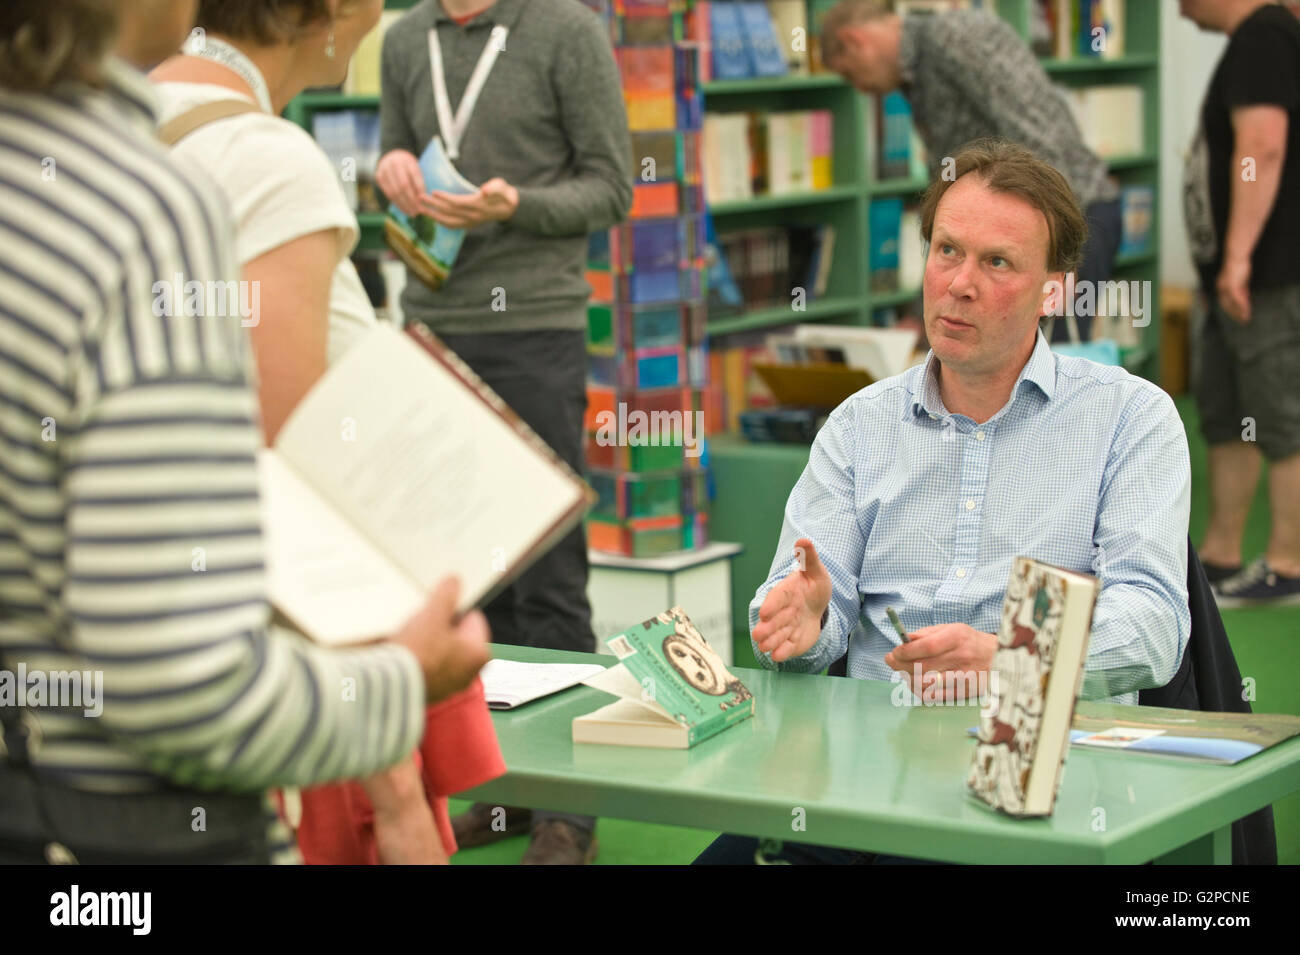 John Lewis-Stempel author book signing in the bookshop at Hay Festival 2016 - Stock Image